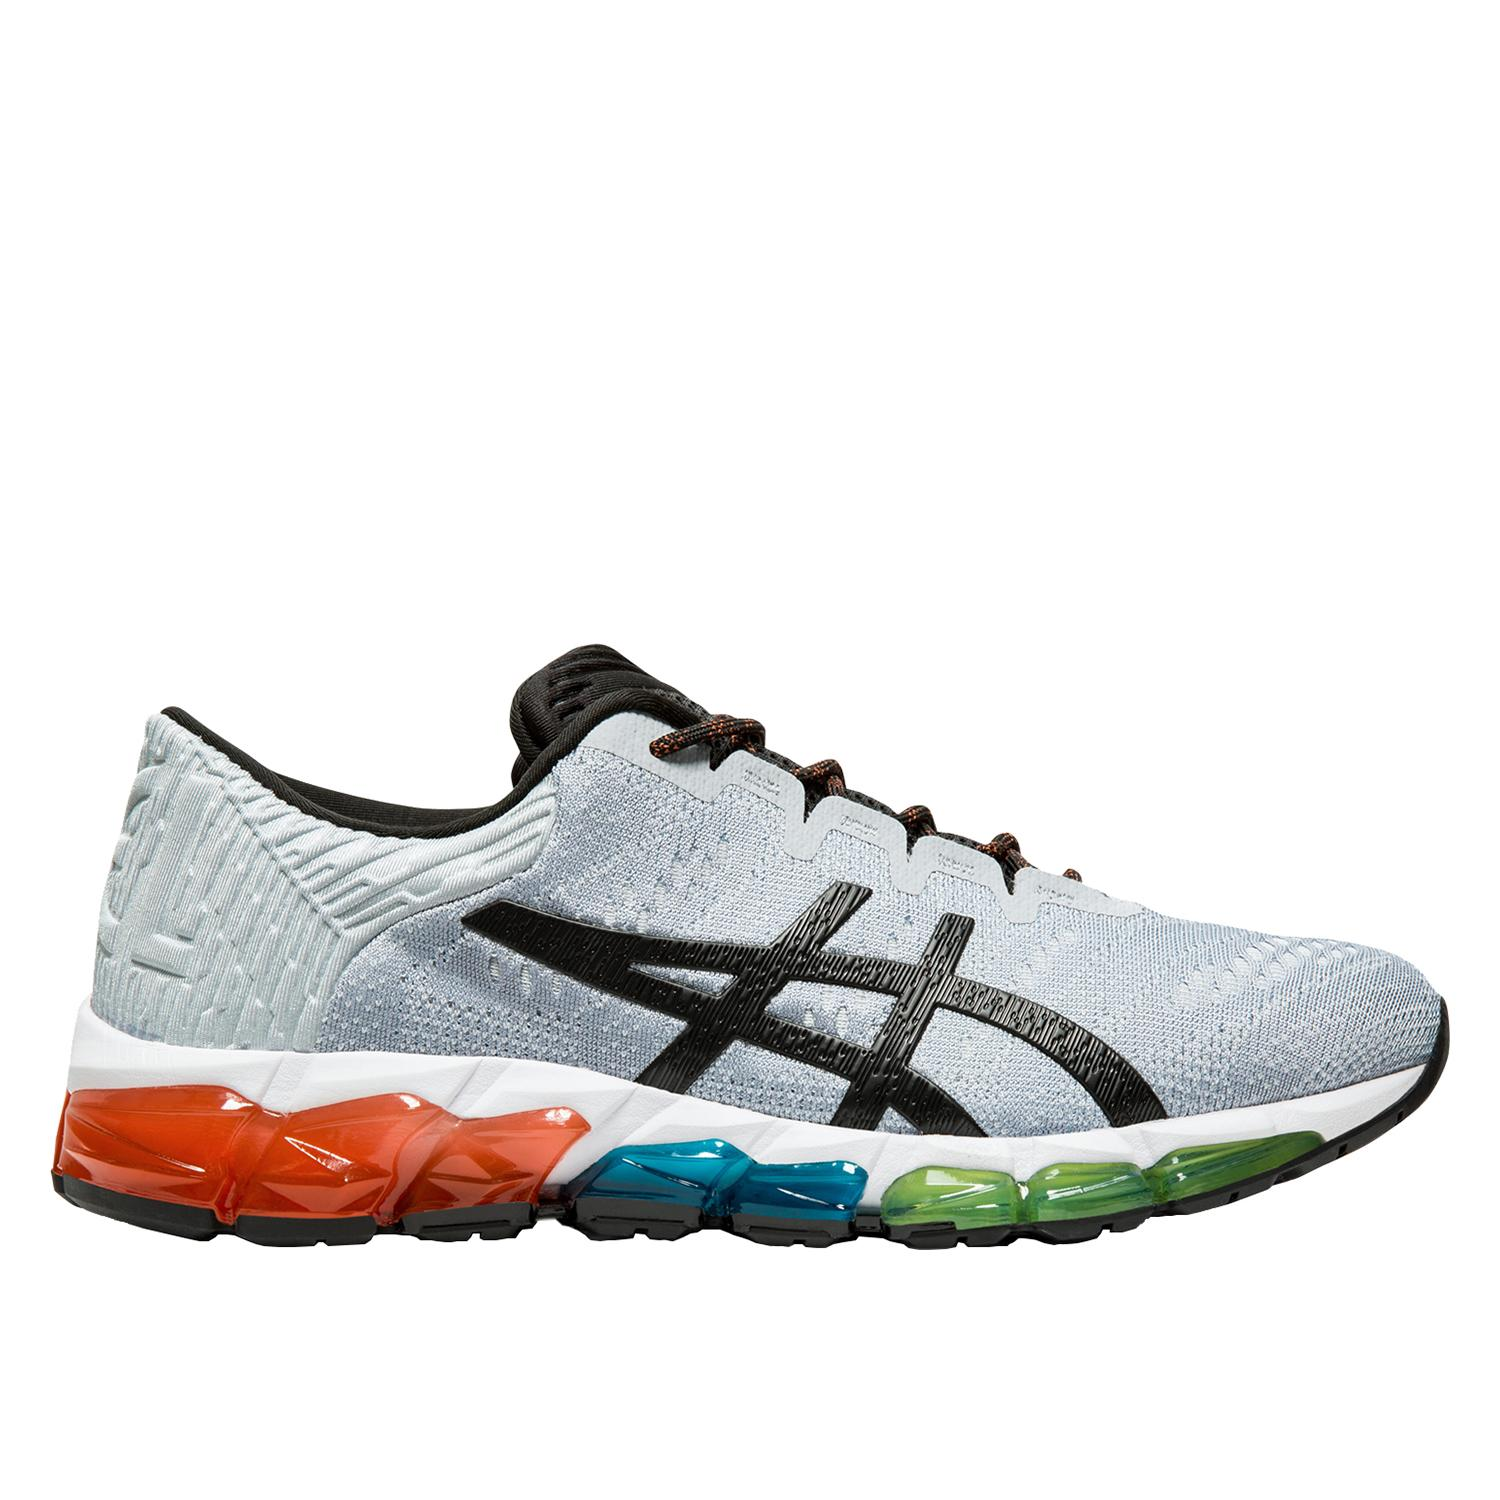 new styles e43dd 0e851 ASICS GEL-Quantum 360 5 JCQ Men's Training Shoe